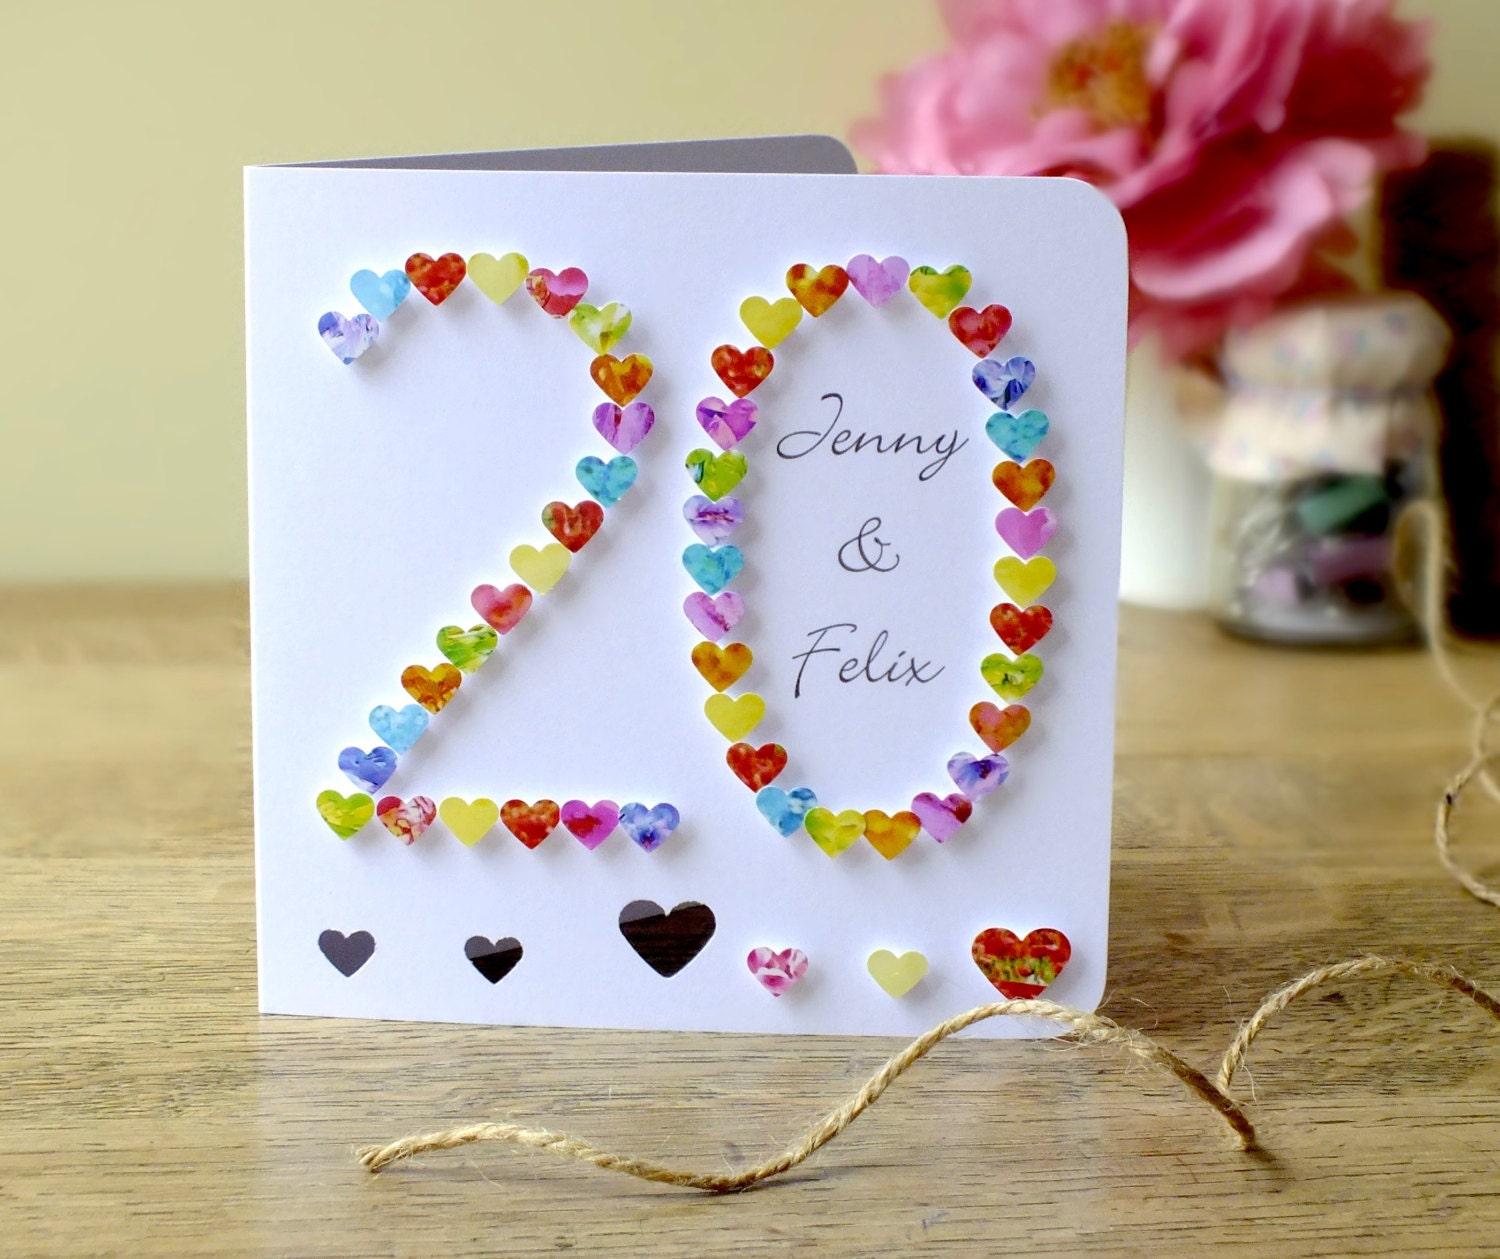 Twentieth Wedding Anniversary Gift: Handmade 3D 20th Wedding Anniversary Card 20th Anniversary